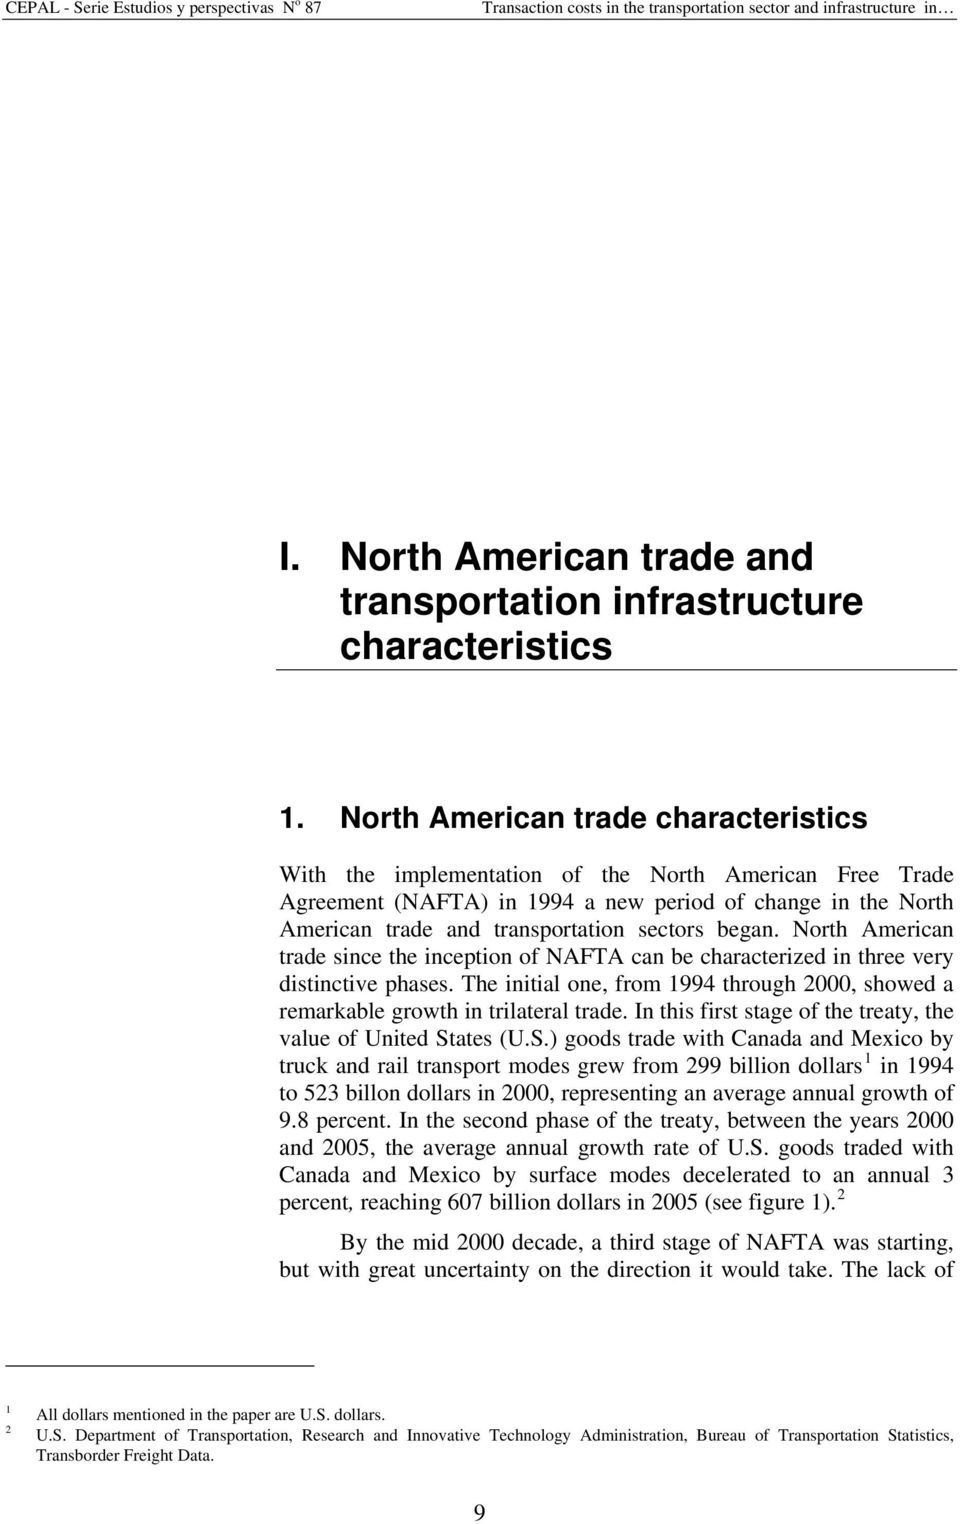 began. North American trade since the inception of NAFTA can be characterized in three very distinctive phases. The initial one, from 1994 through 2000, showed a remarkable growth in trilateral trade.